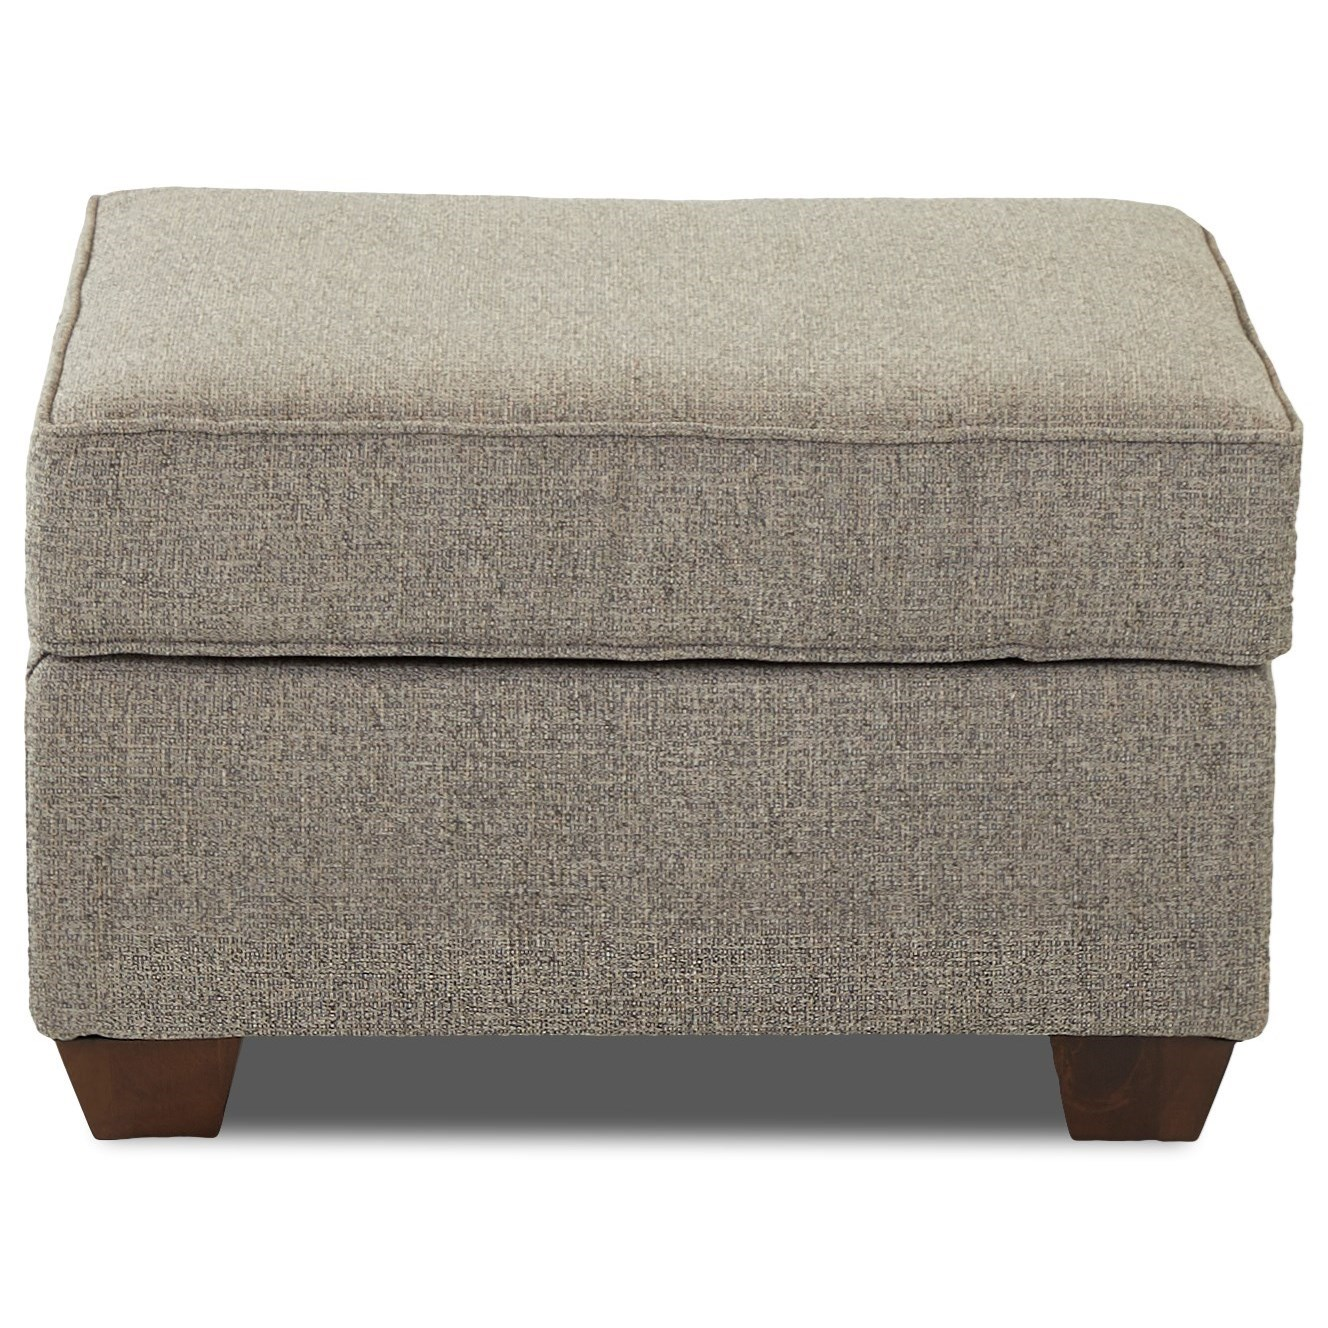 Westbrook Ottoman by Klaussner at Johnny Janosik